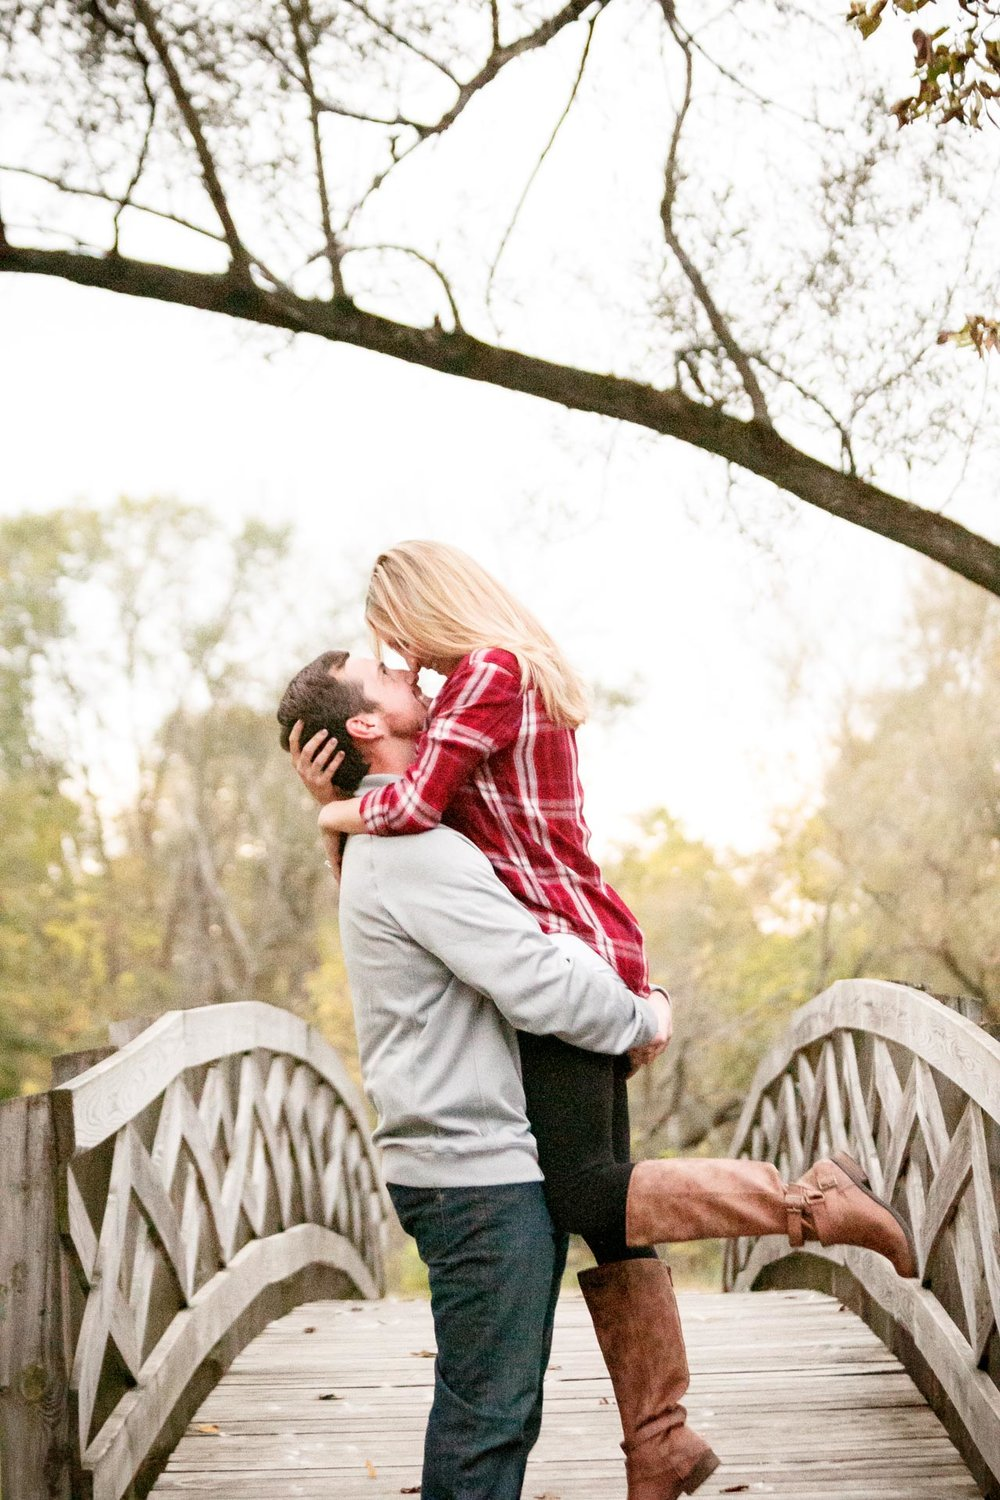 covered-bridge-park-wisconsin-engagement-adam-shea-photography-green-bay-appleton-neenah-photographer-15.jpg